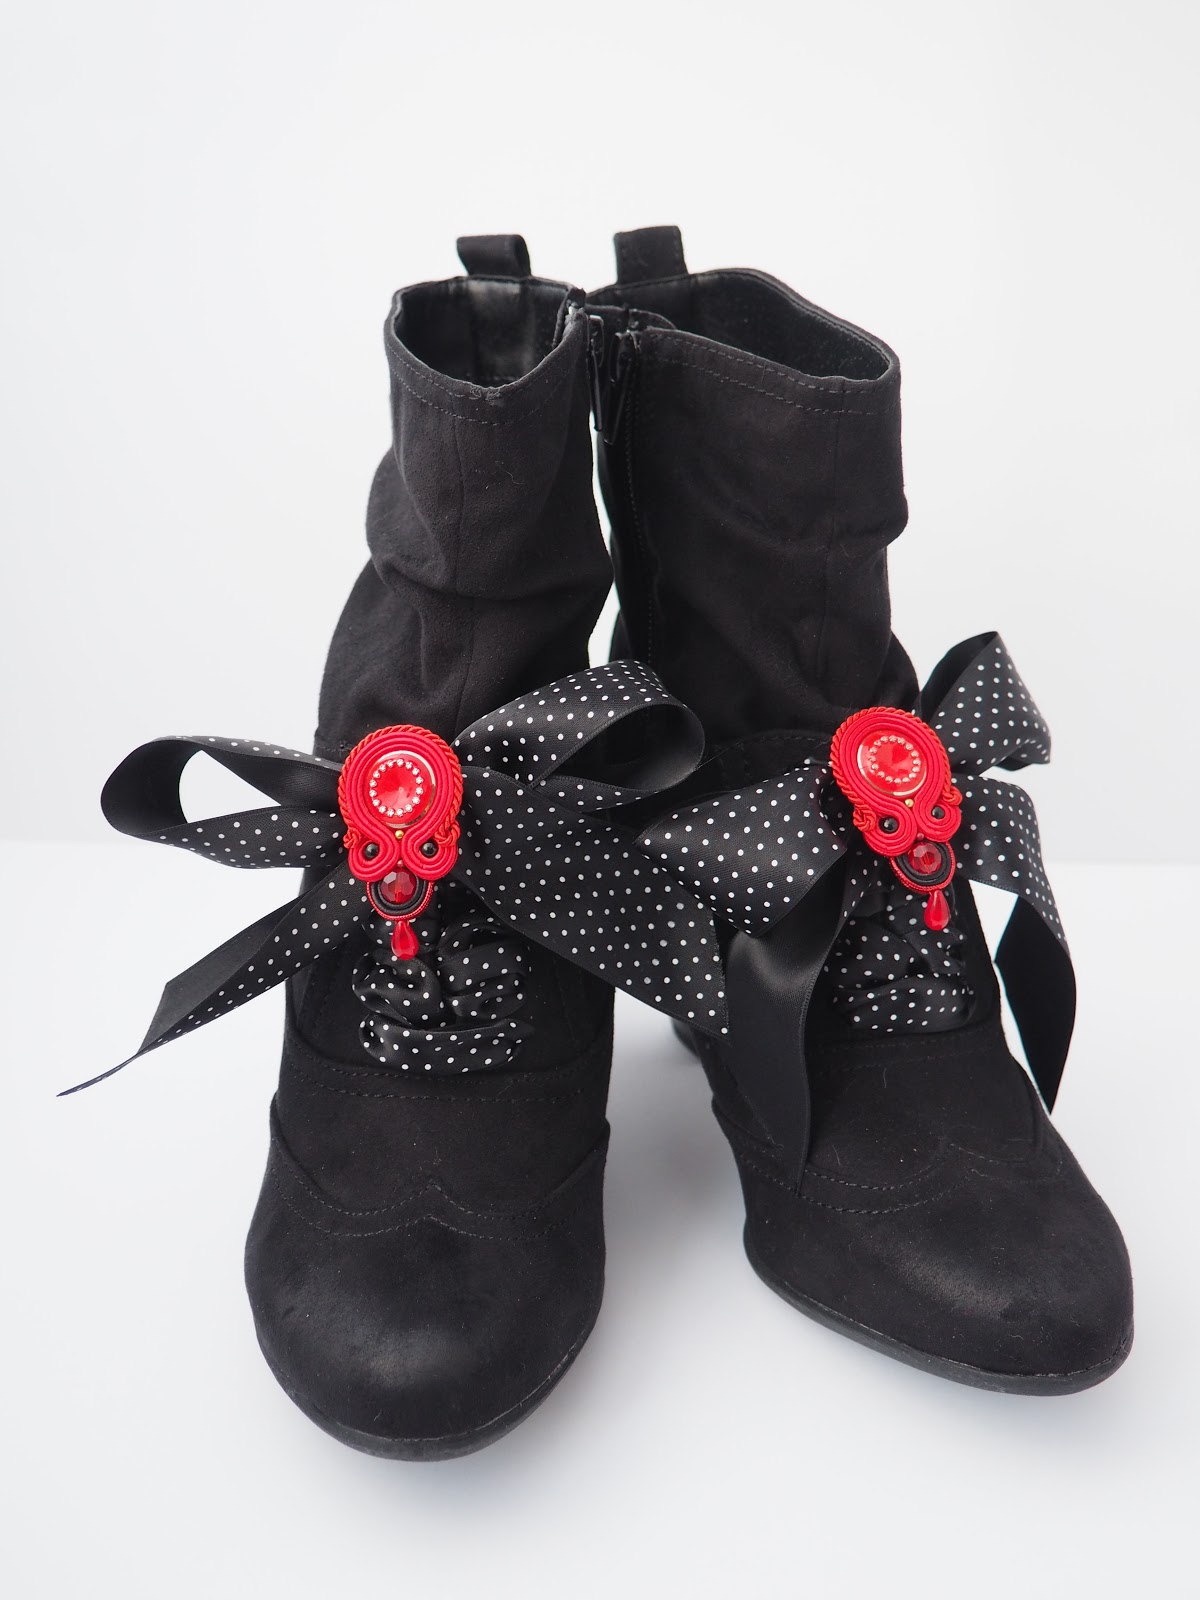 ankle boots, bows, brooch, Deichmann, man made, shoes, soutache, red, polka dot, vegan, Henderson's, Edinburgh, festive menu, pizza express, what vegans eat, what vegans wear, Tocha's World